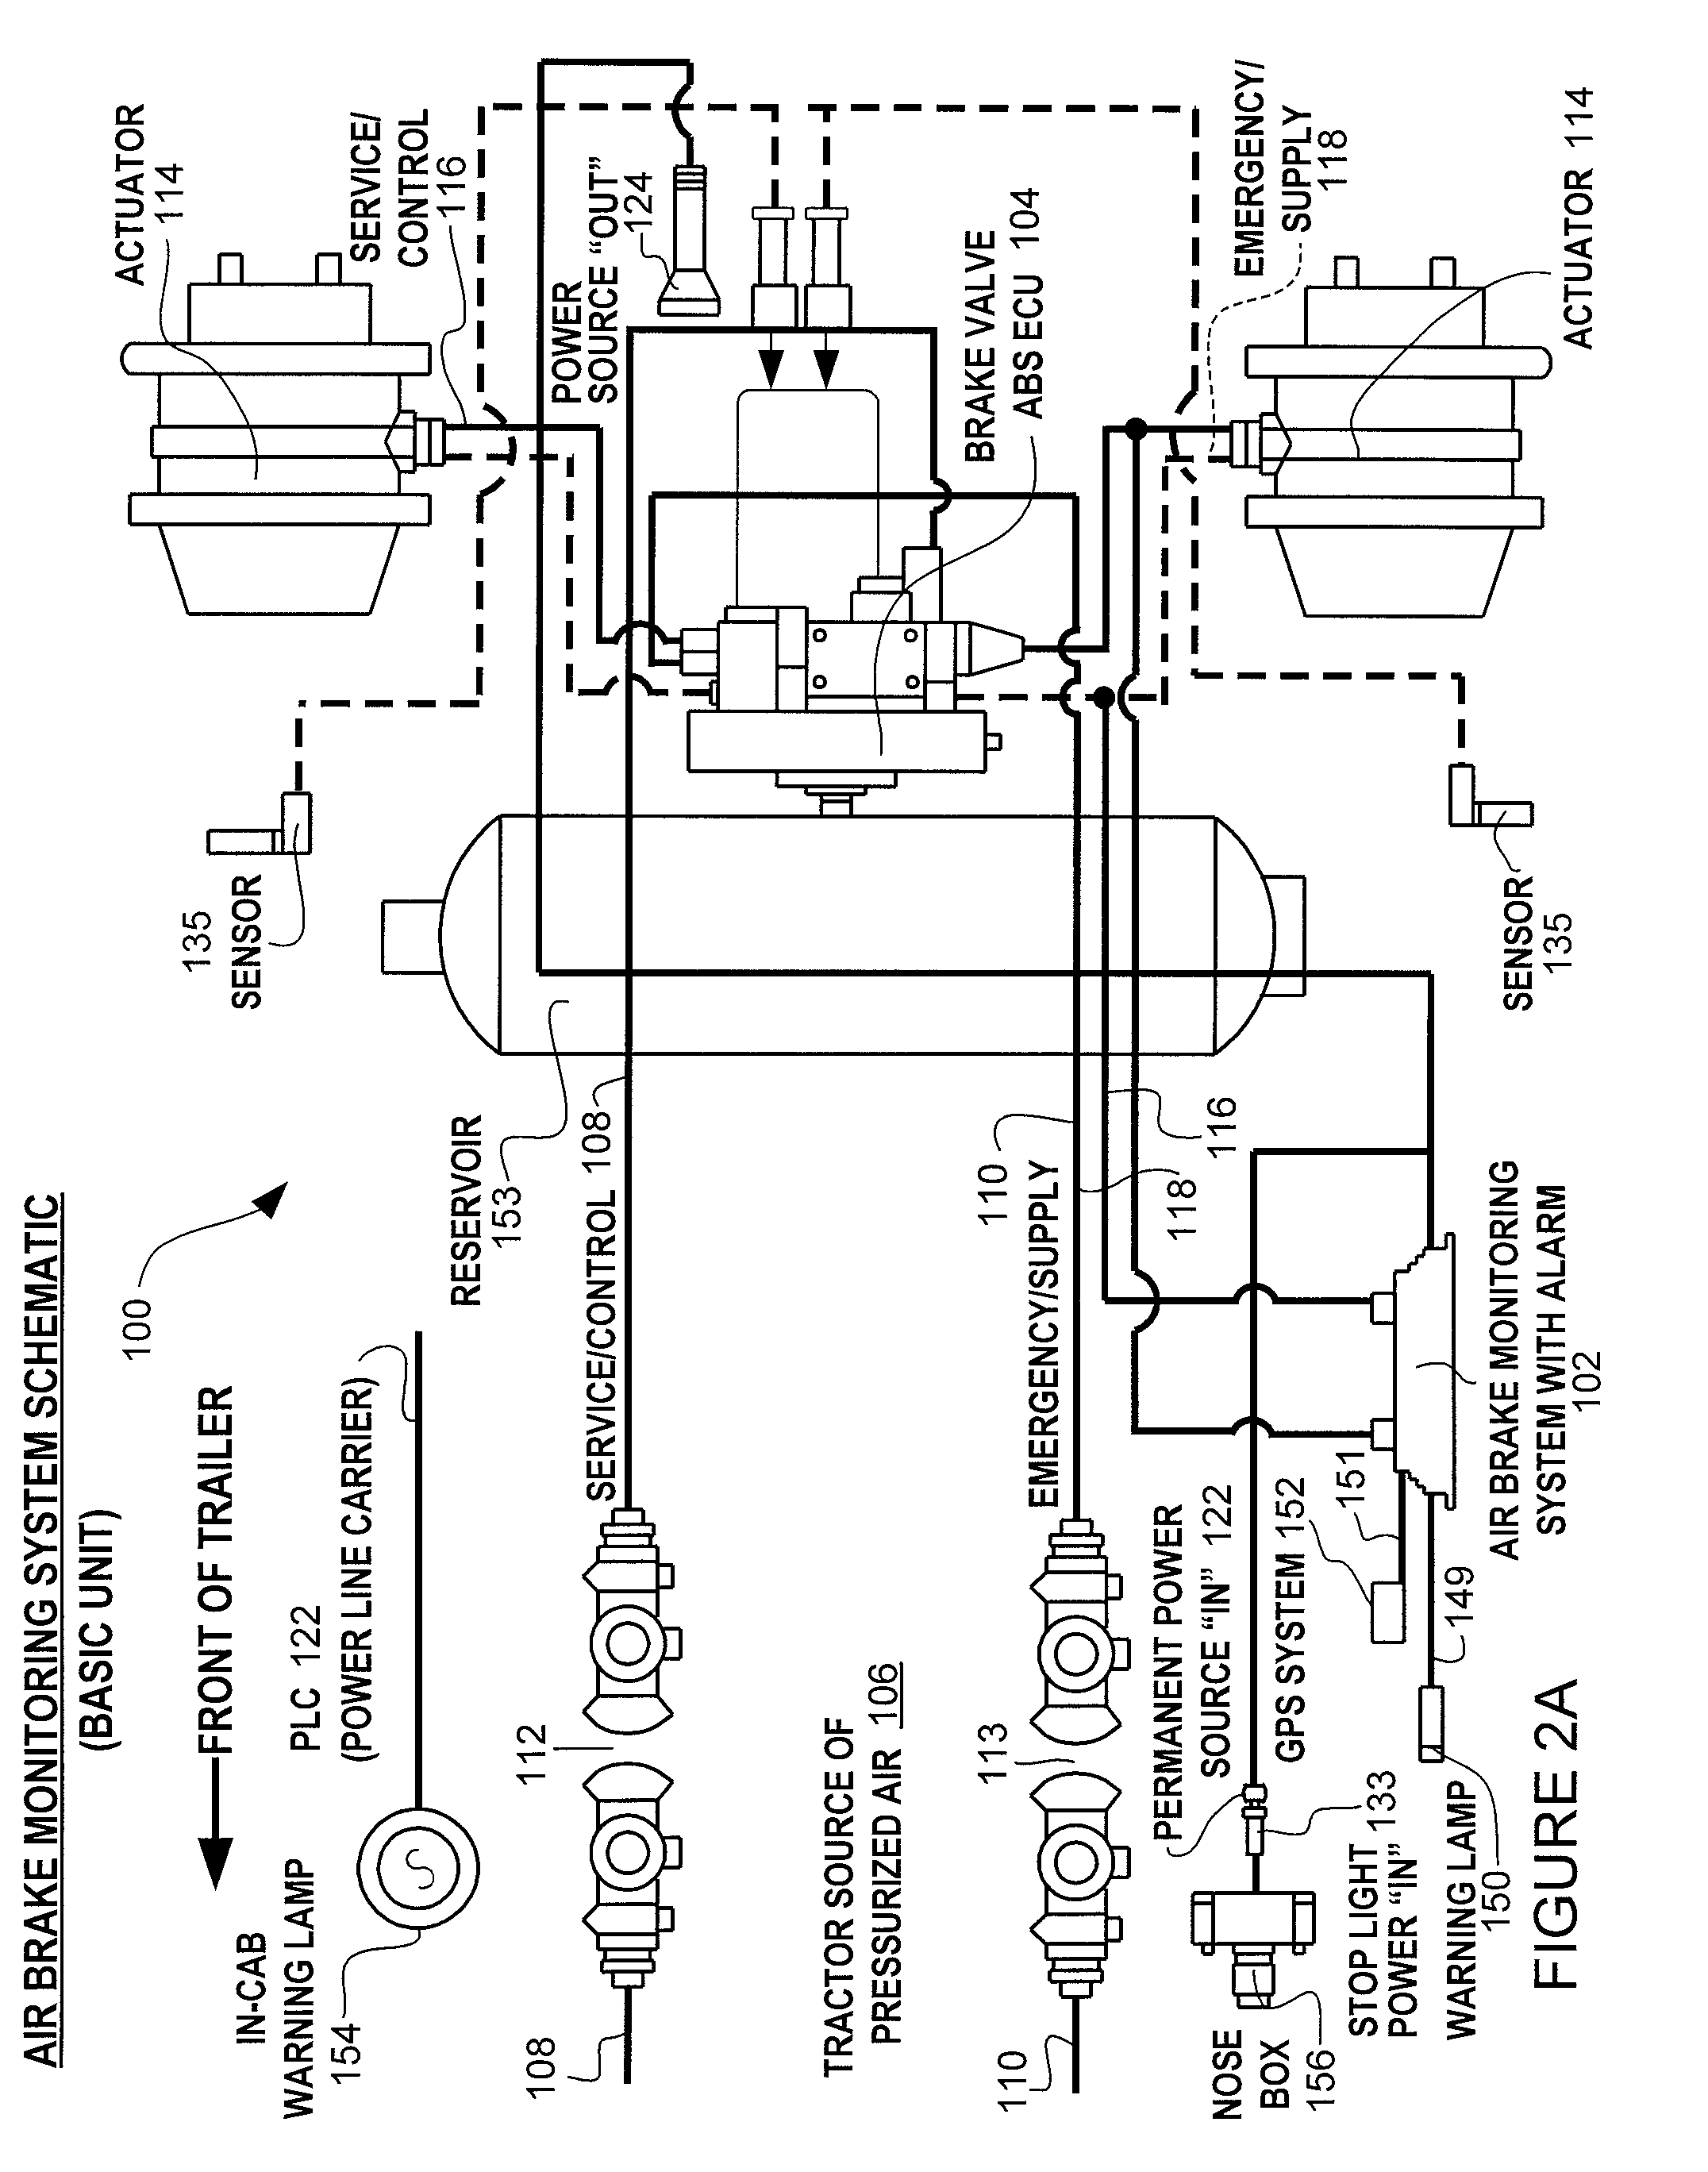 Mack truck electrical wiring diagram further Schematic as well Relay Vsr Scr Whats The Difference further Ms2external moreover Nissan Cefiro Engine Diagram. on ecu circuit diagrams